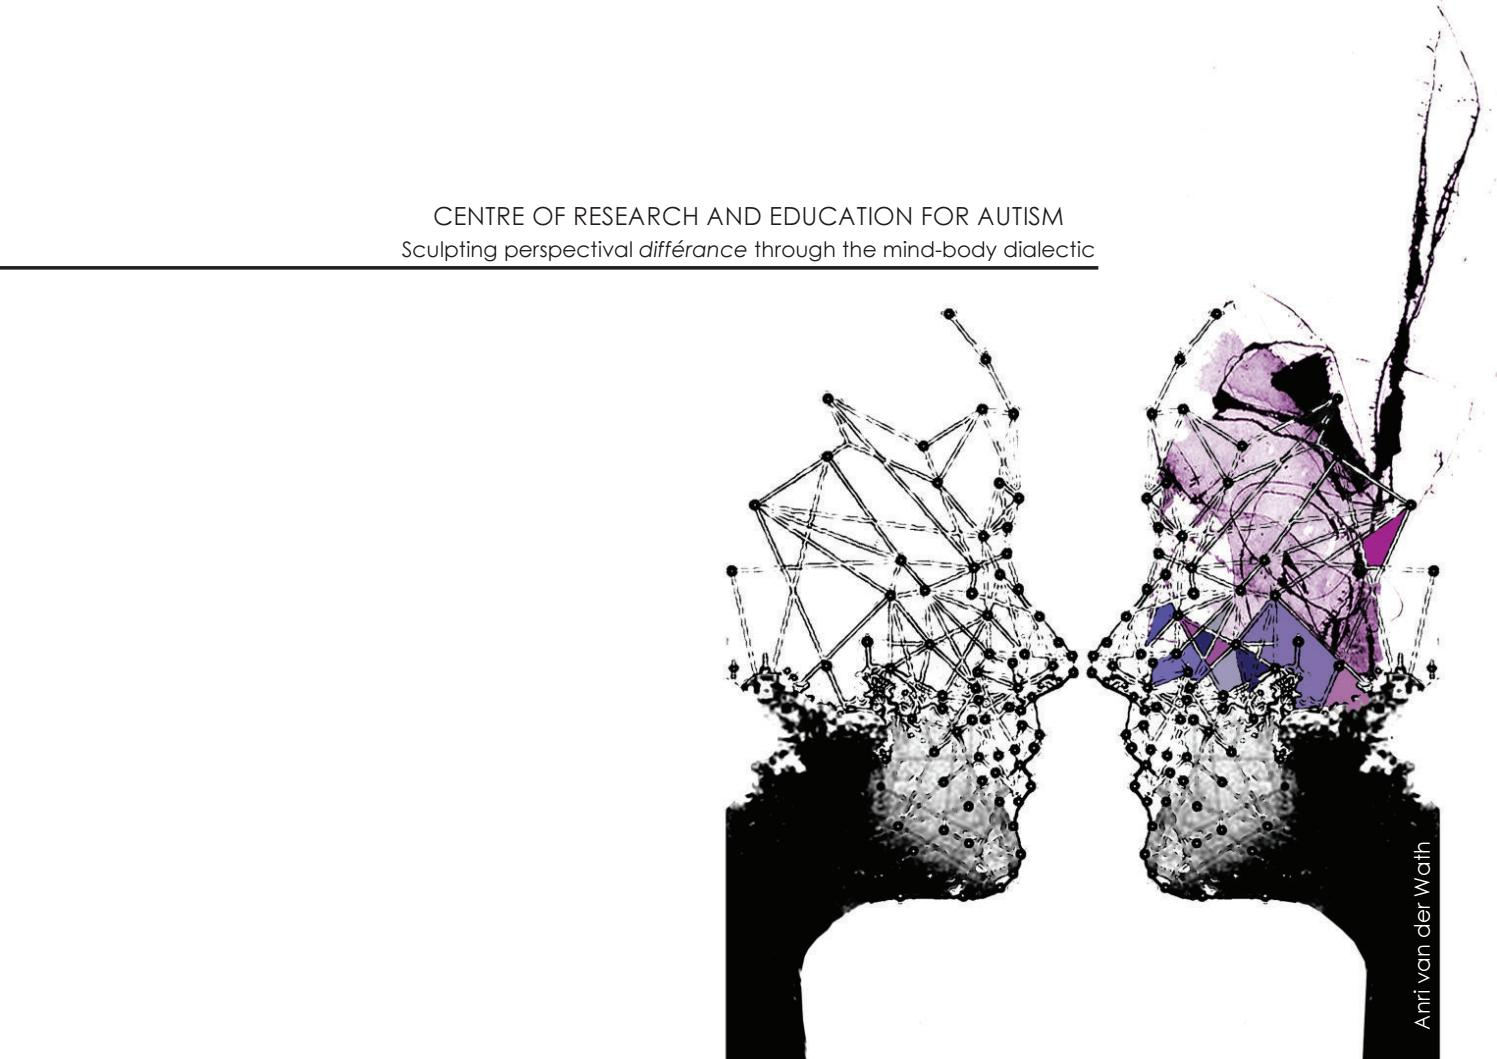 2016 Architecture thesis: Centre of research and education